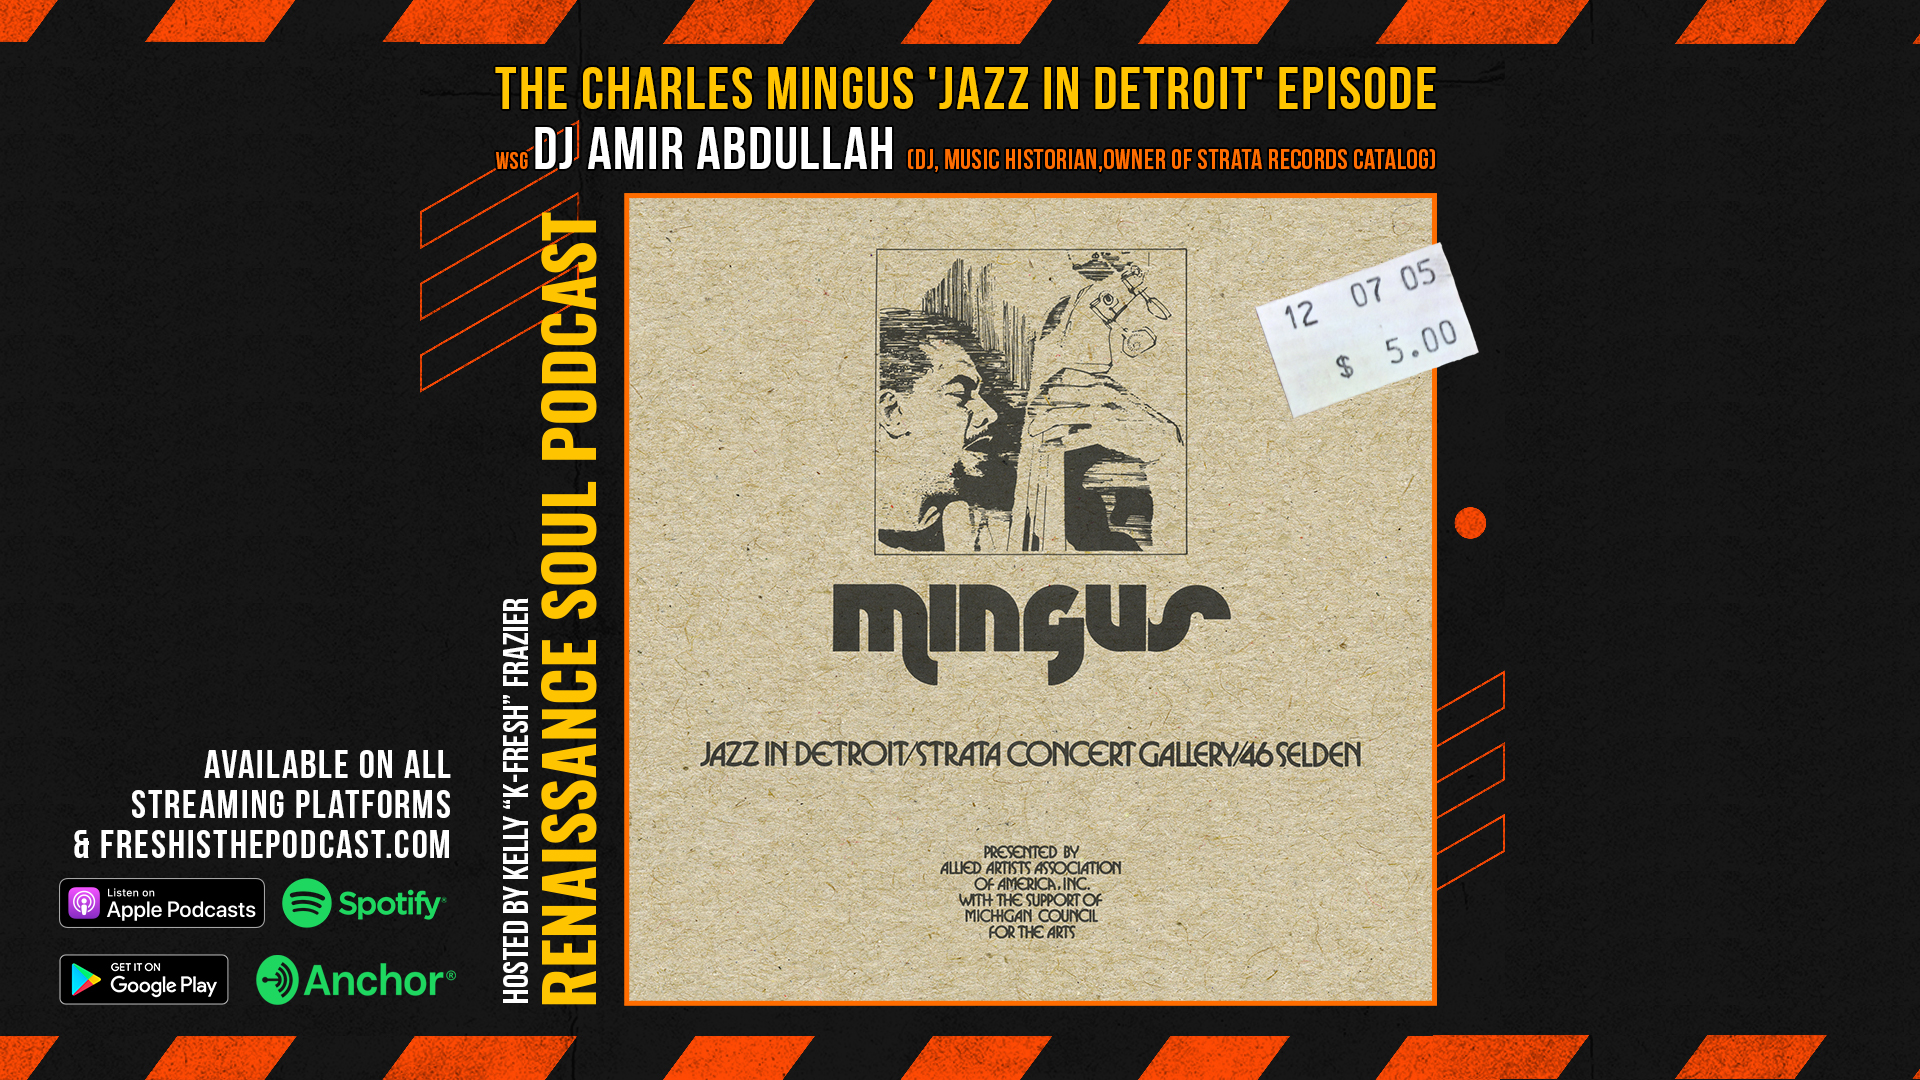 Renaissance Soul Podcast: The Charles Mingus 'Jazz in Detroit' Episode - wsg DJ, Music Historian and Owner of Strata Records Catalog, DJ Amir Abdullah